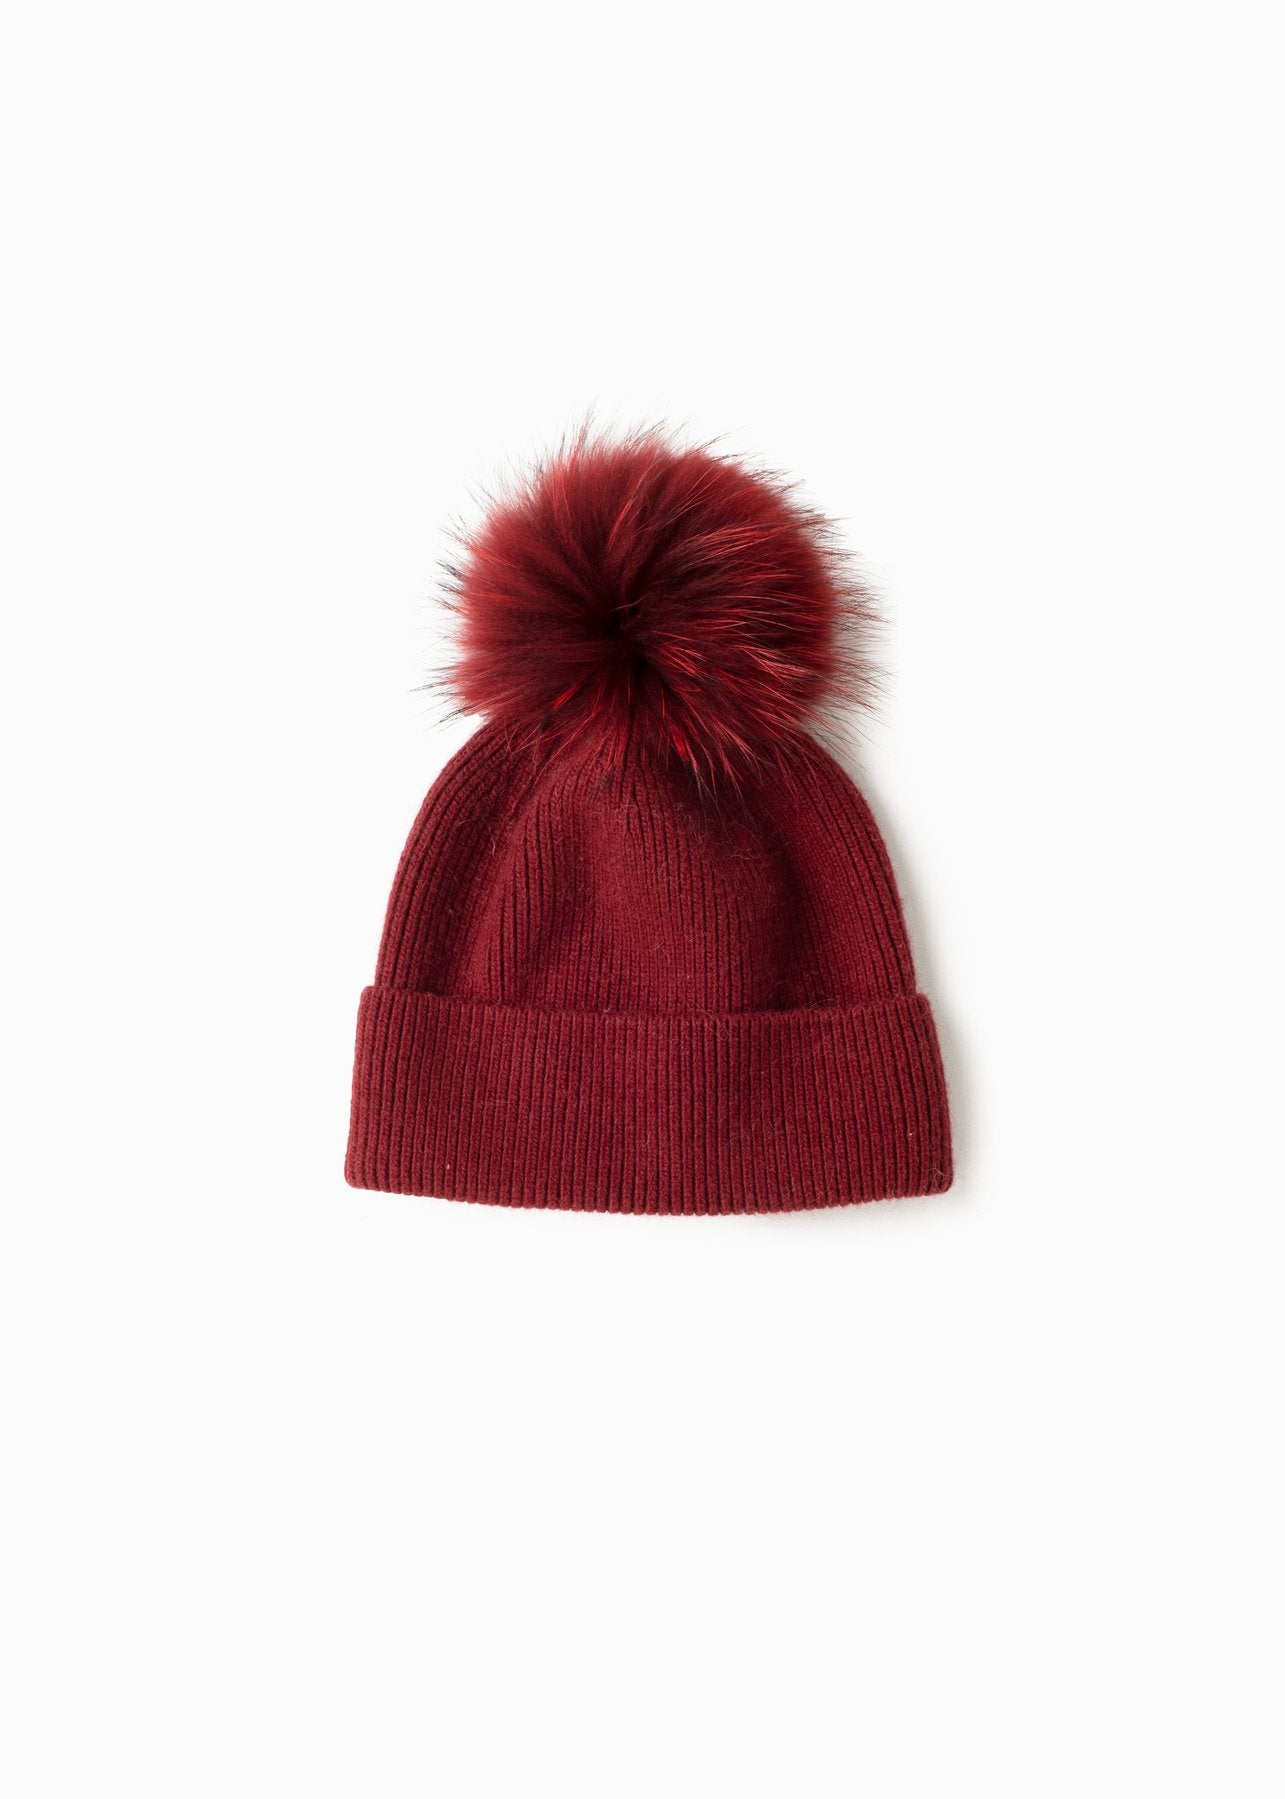 Cashmere Blended Ribbed Knit Beanie in Burgundy